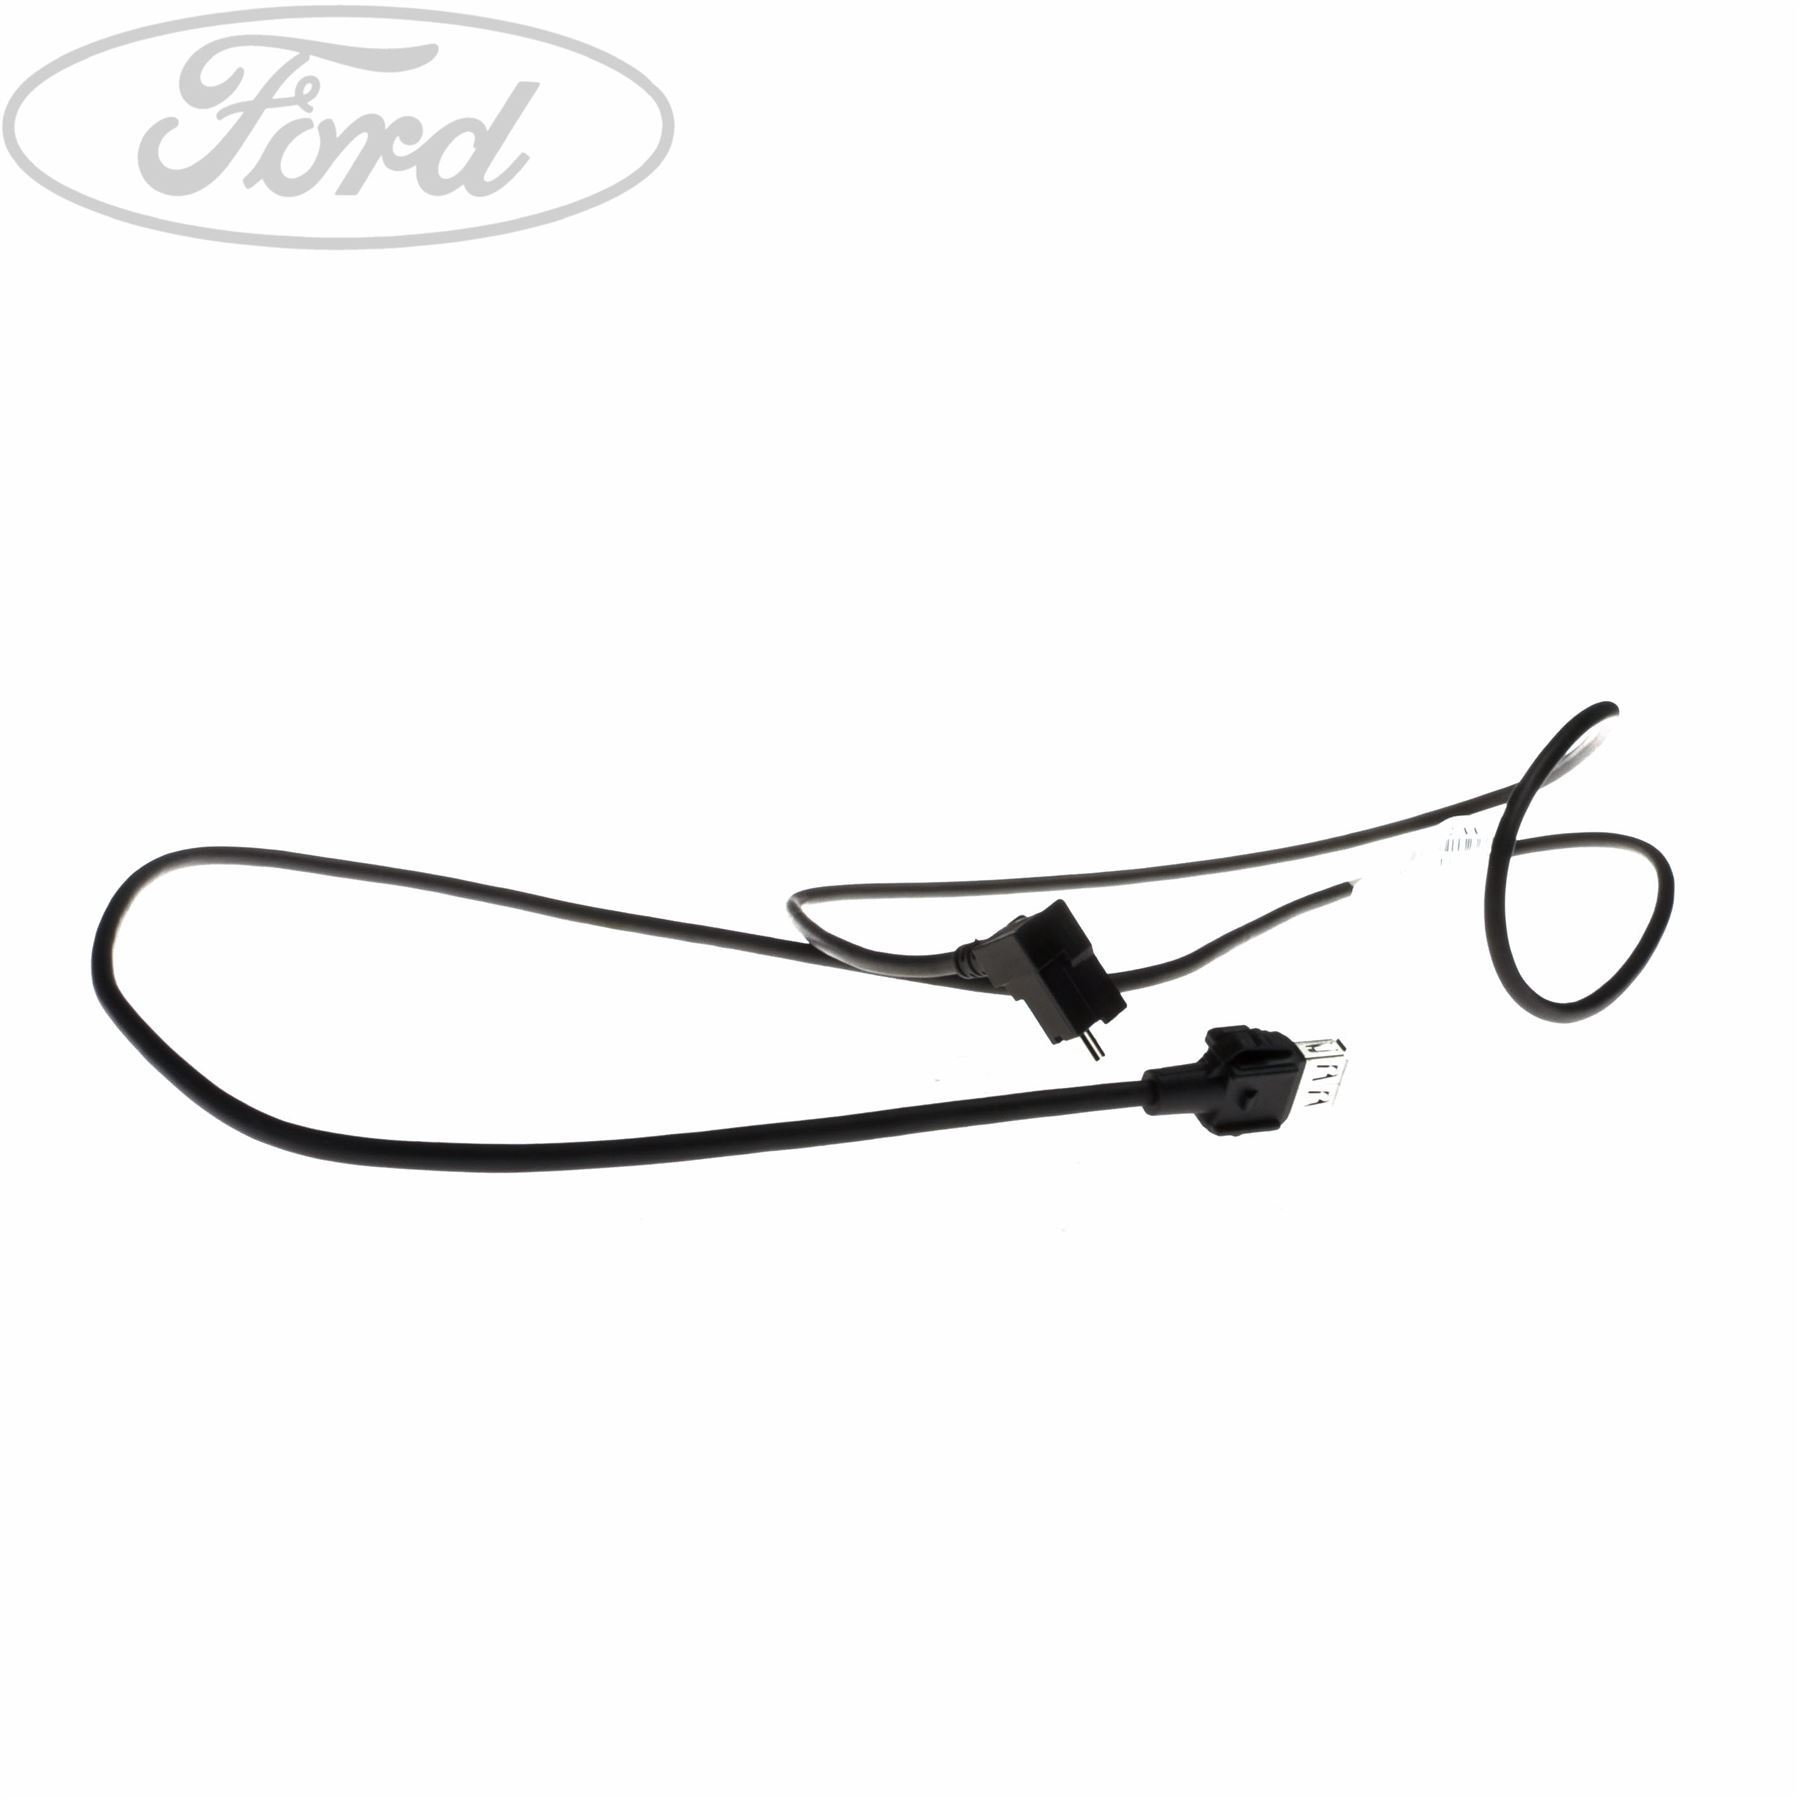 Genuine Ford Fiesta MK7 Dashboard USB Wire Cable 1854171